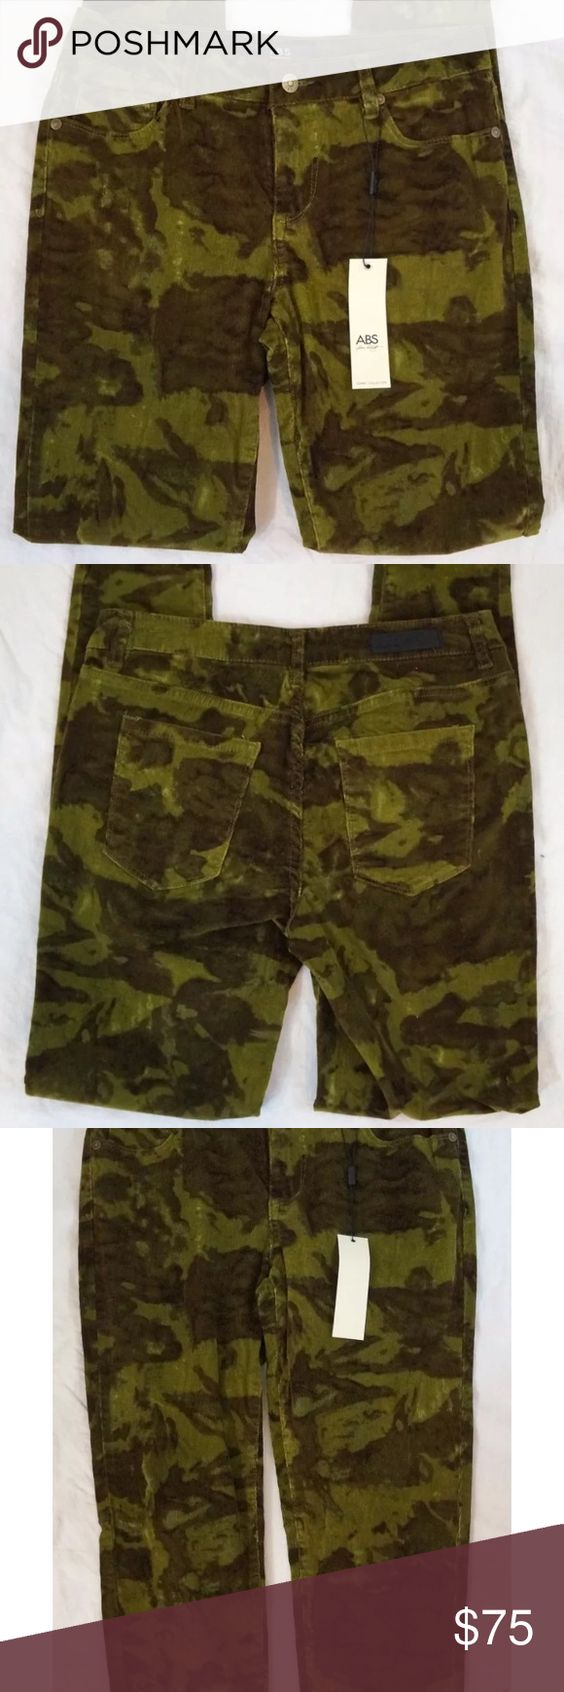 ABS anthro skinny leg camo corduroy pants sz 27 NWT | D, Abs and Pants